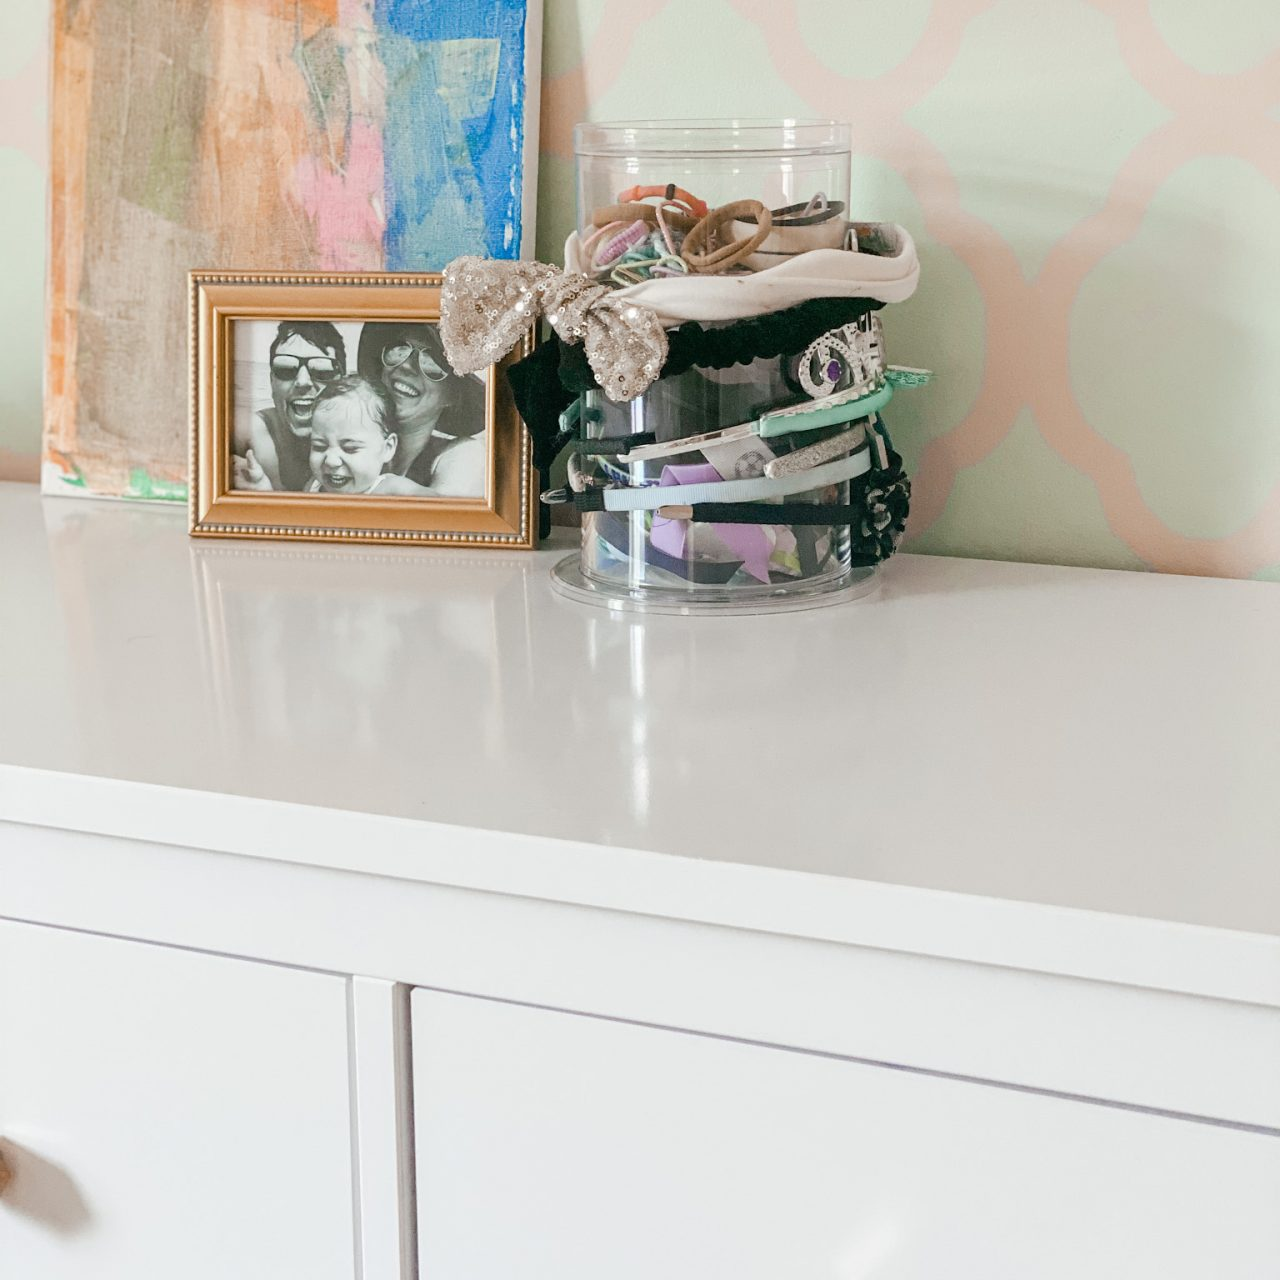 Headband Storage: How To Organize Them